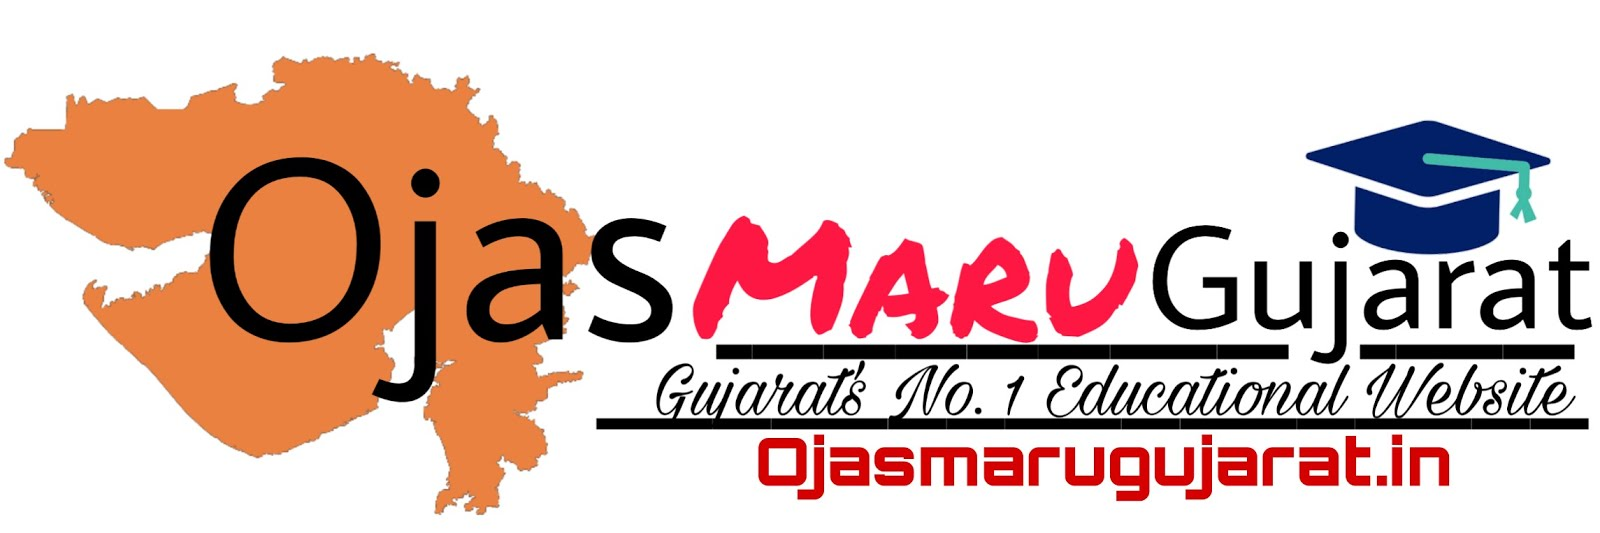 Ojas Maru Gujarat :: Educational website::ojasmarugujarat.in